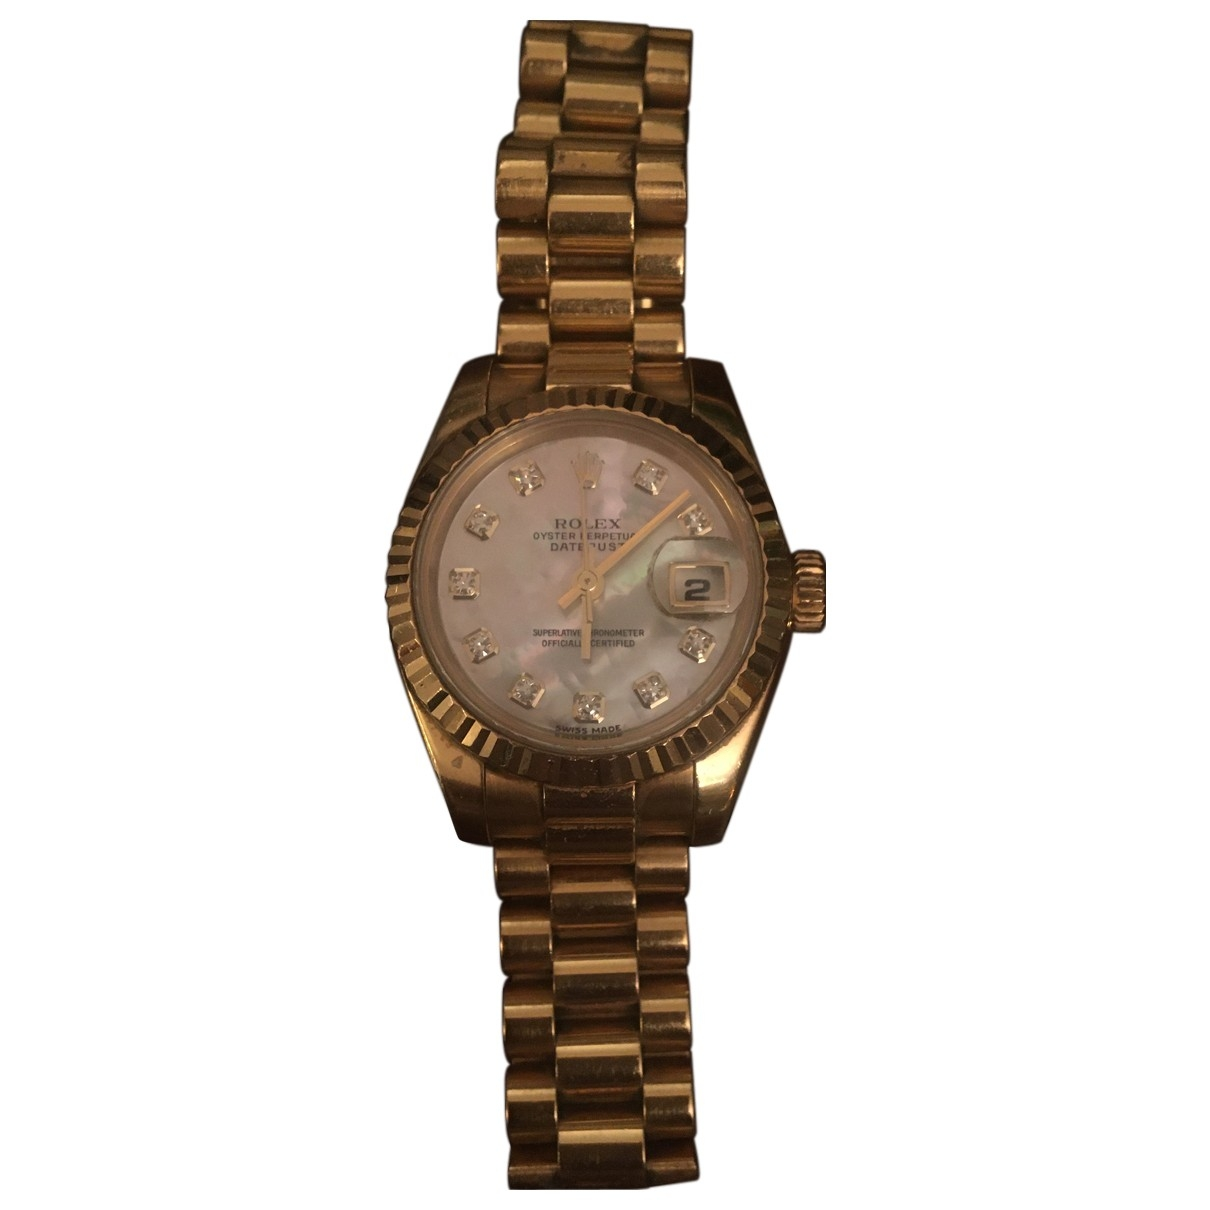 Rolex Lady Oyster Perpetual 24mm Uhr in  Gold Gelbgold